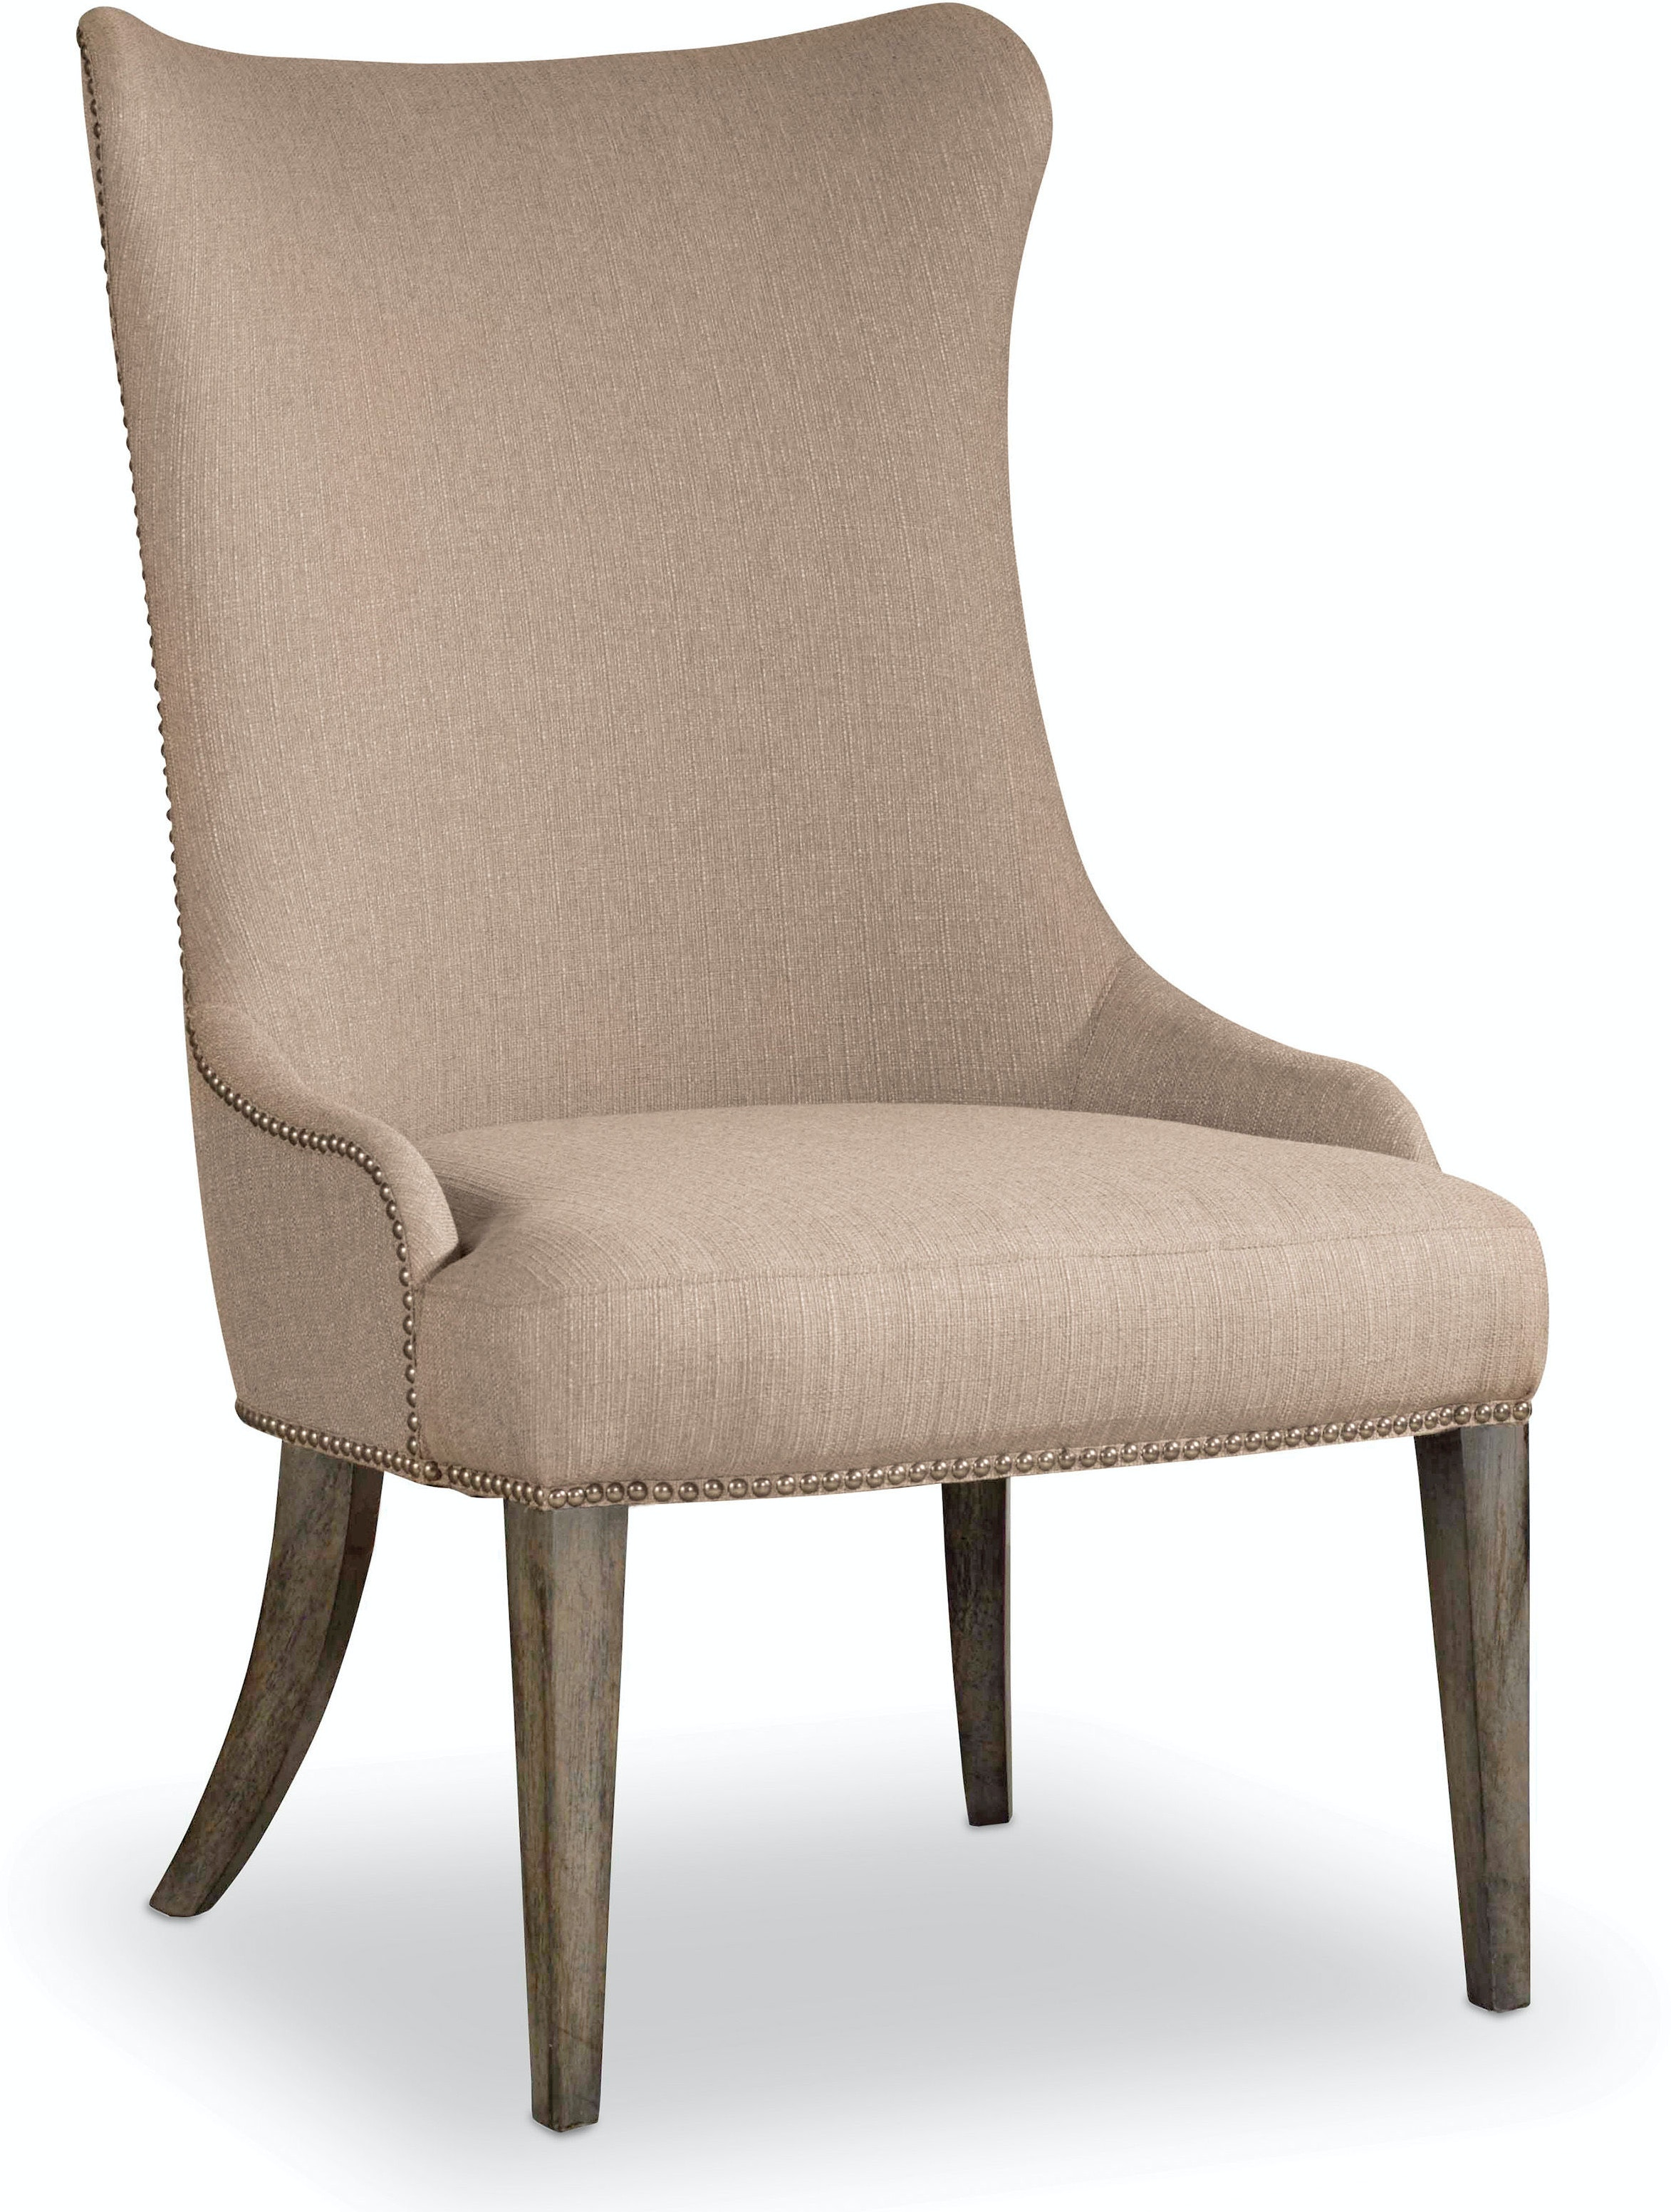 Swell Hooker Furniture Dining Room True Vintage Upholstered Dining Bralicious Painted Fabric Chair Ideas Braliciousco